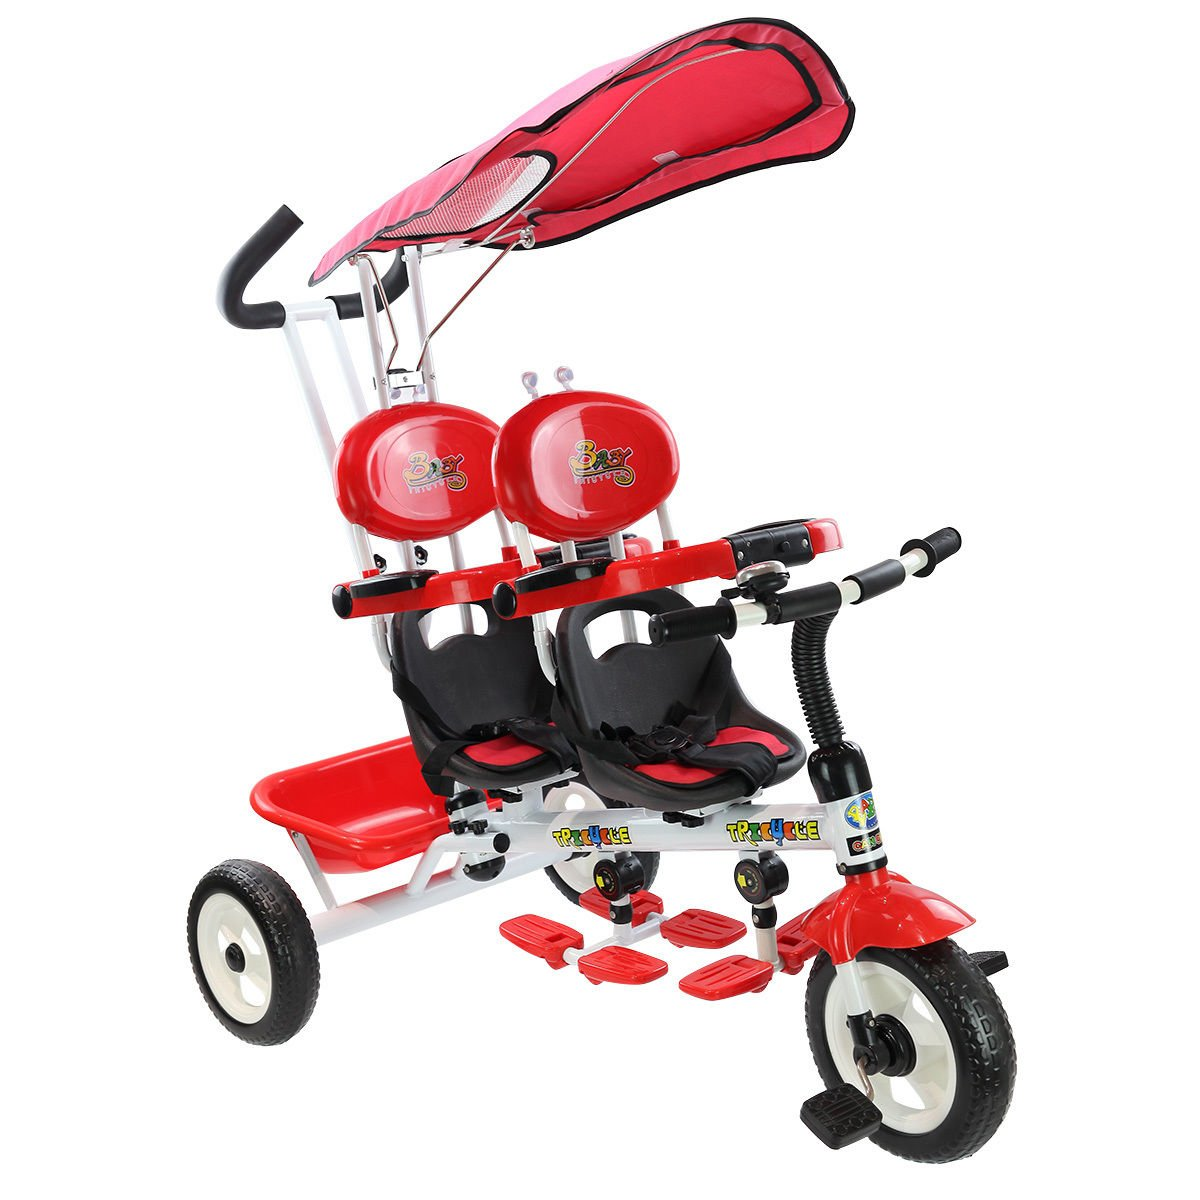 Costzon 4 In 1 Twins Kids Trike Baby Toddler Tricycle Safety Double Rotatable Seat w/Basket (Red)